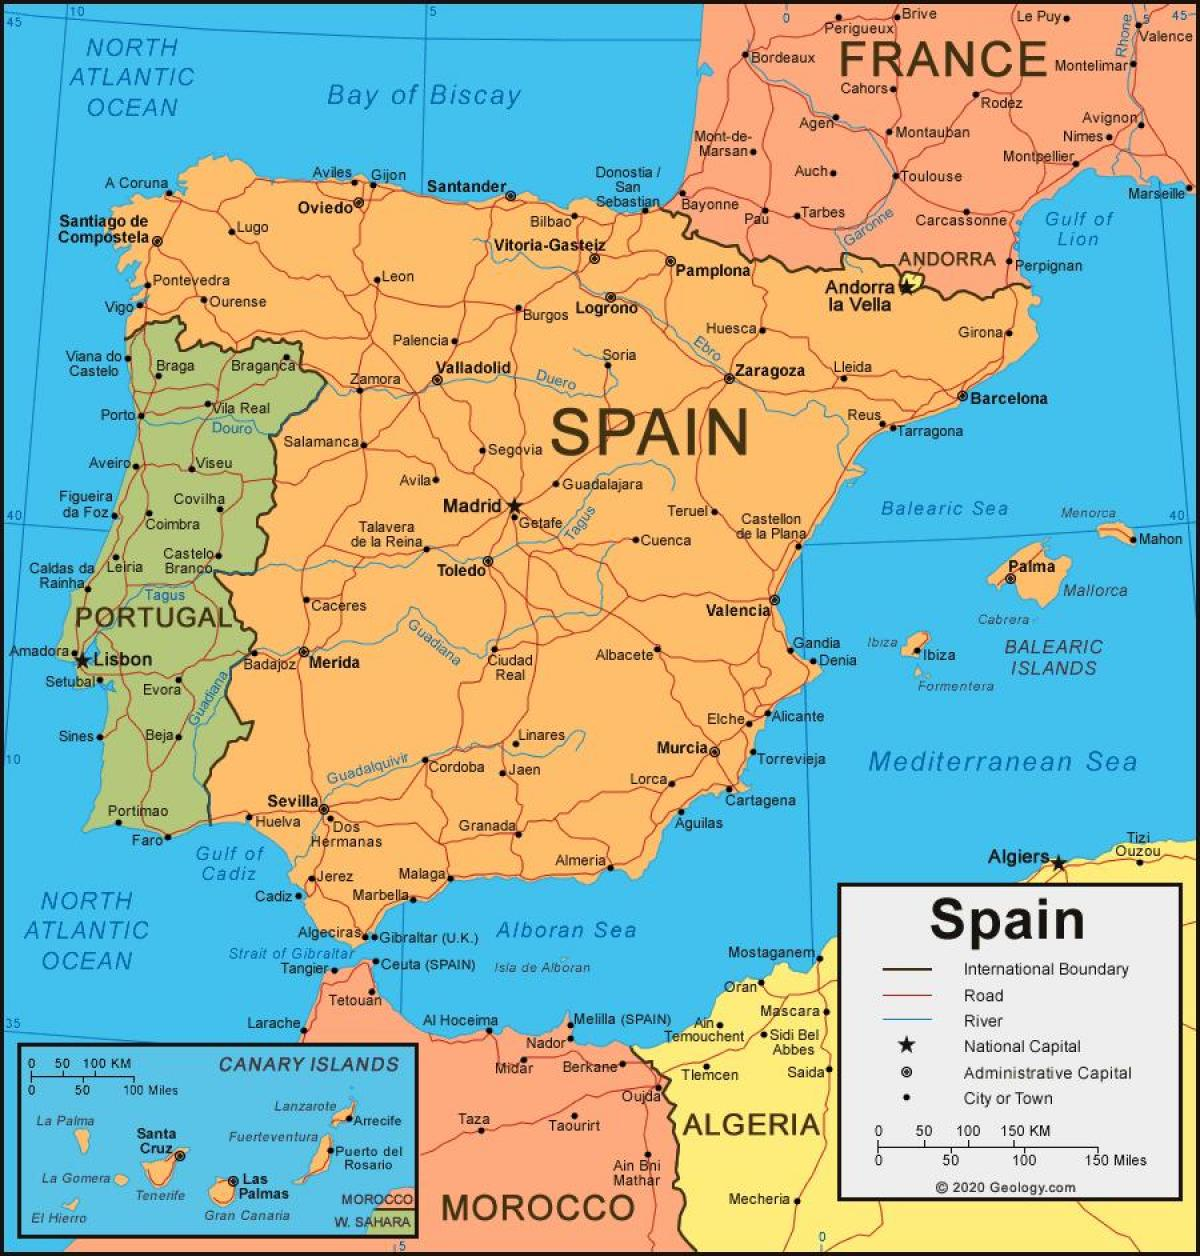 map of Spain and neighboring countries